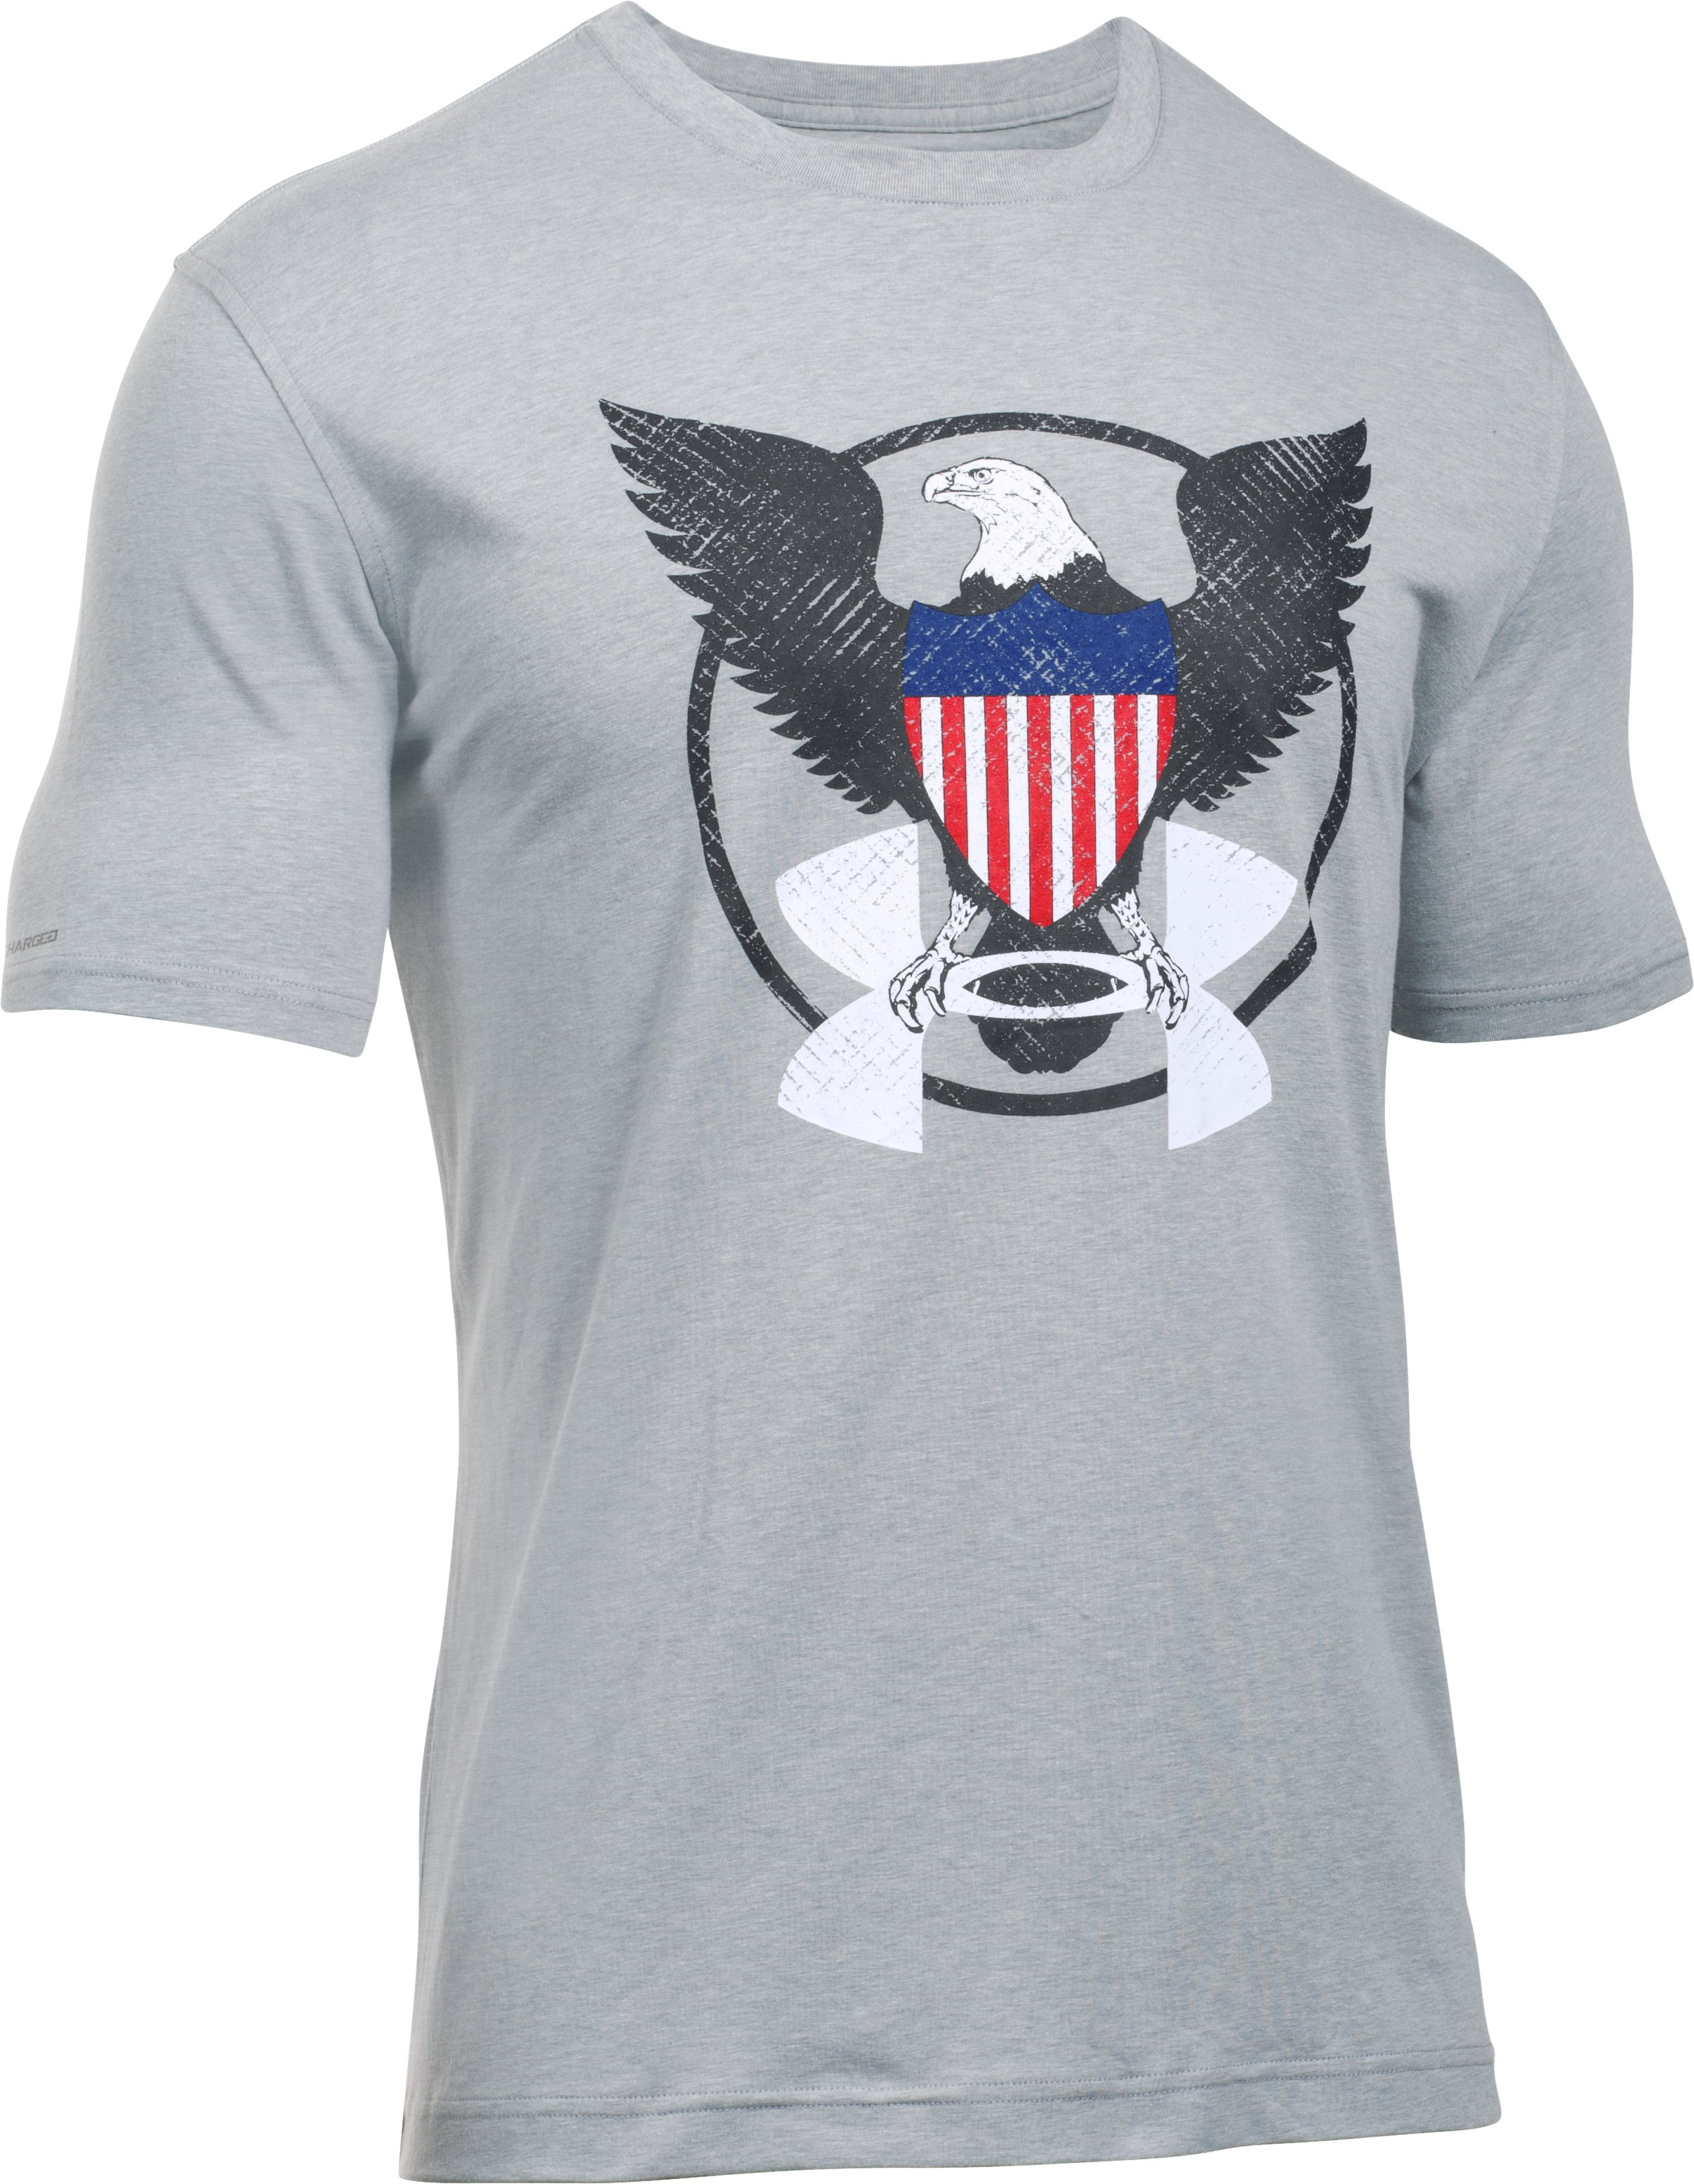 Men's UA Freedom USA Eagle T-Shirt, True Gray Heather, undefined